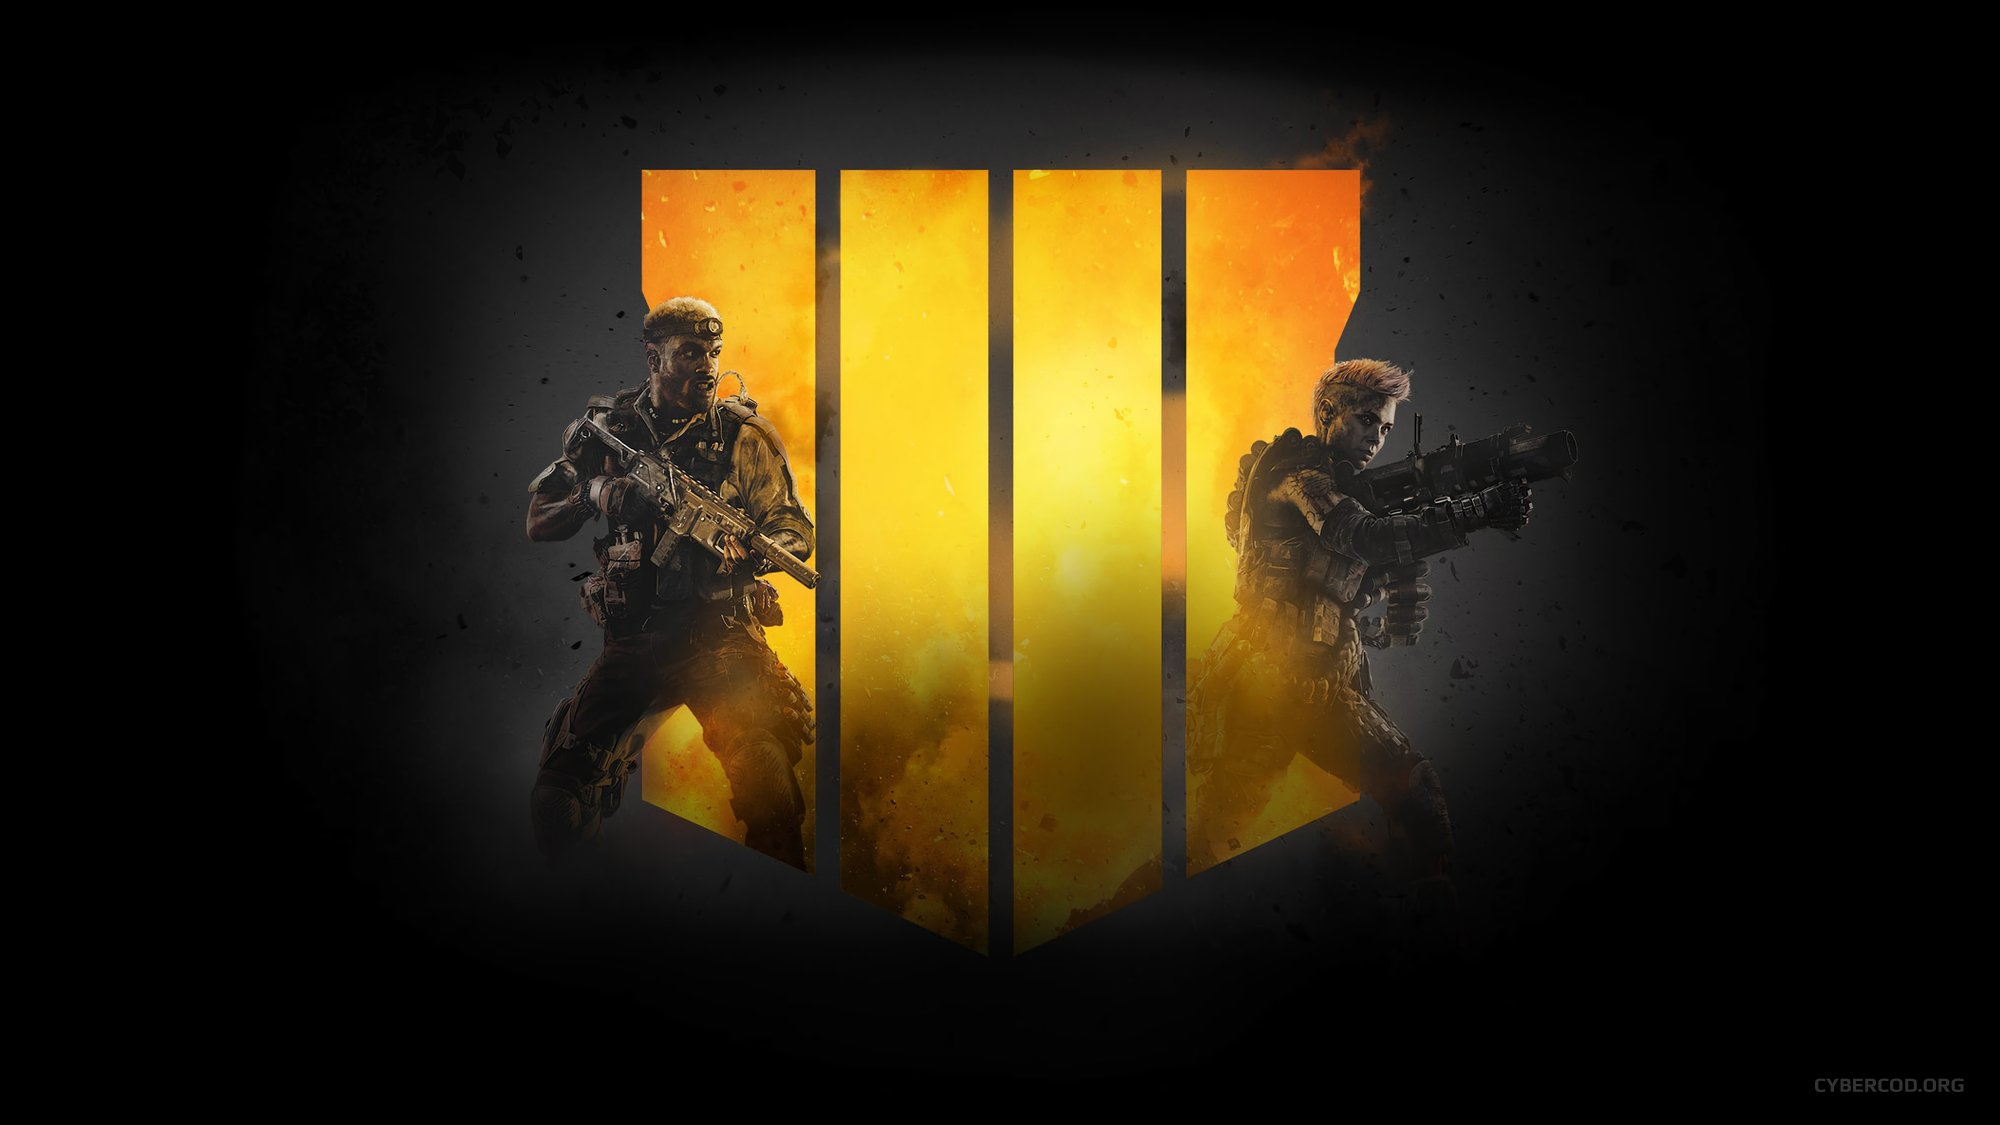 CALL OF DUTY: BLACK OPS IIII LOGO SOLDIERS